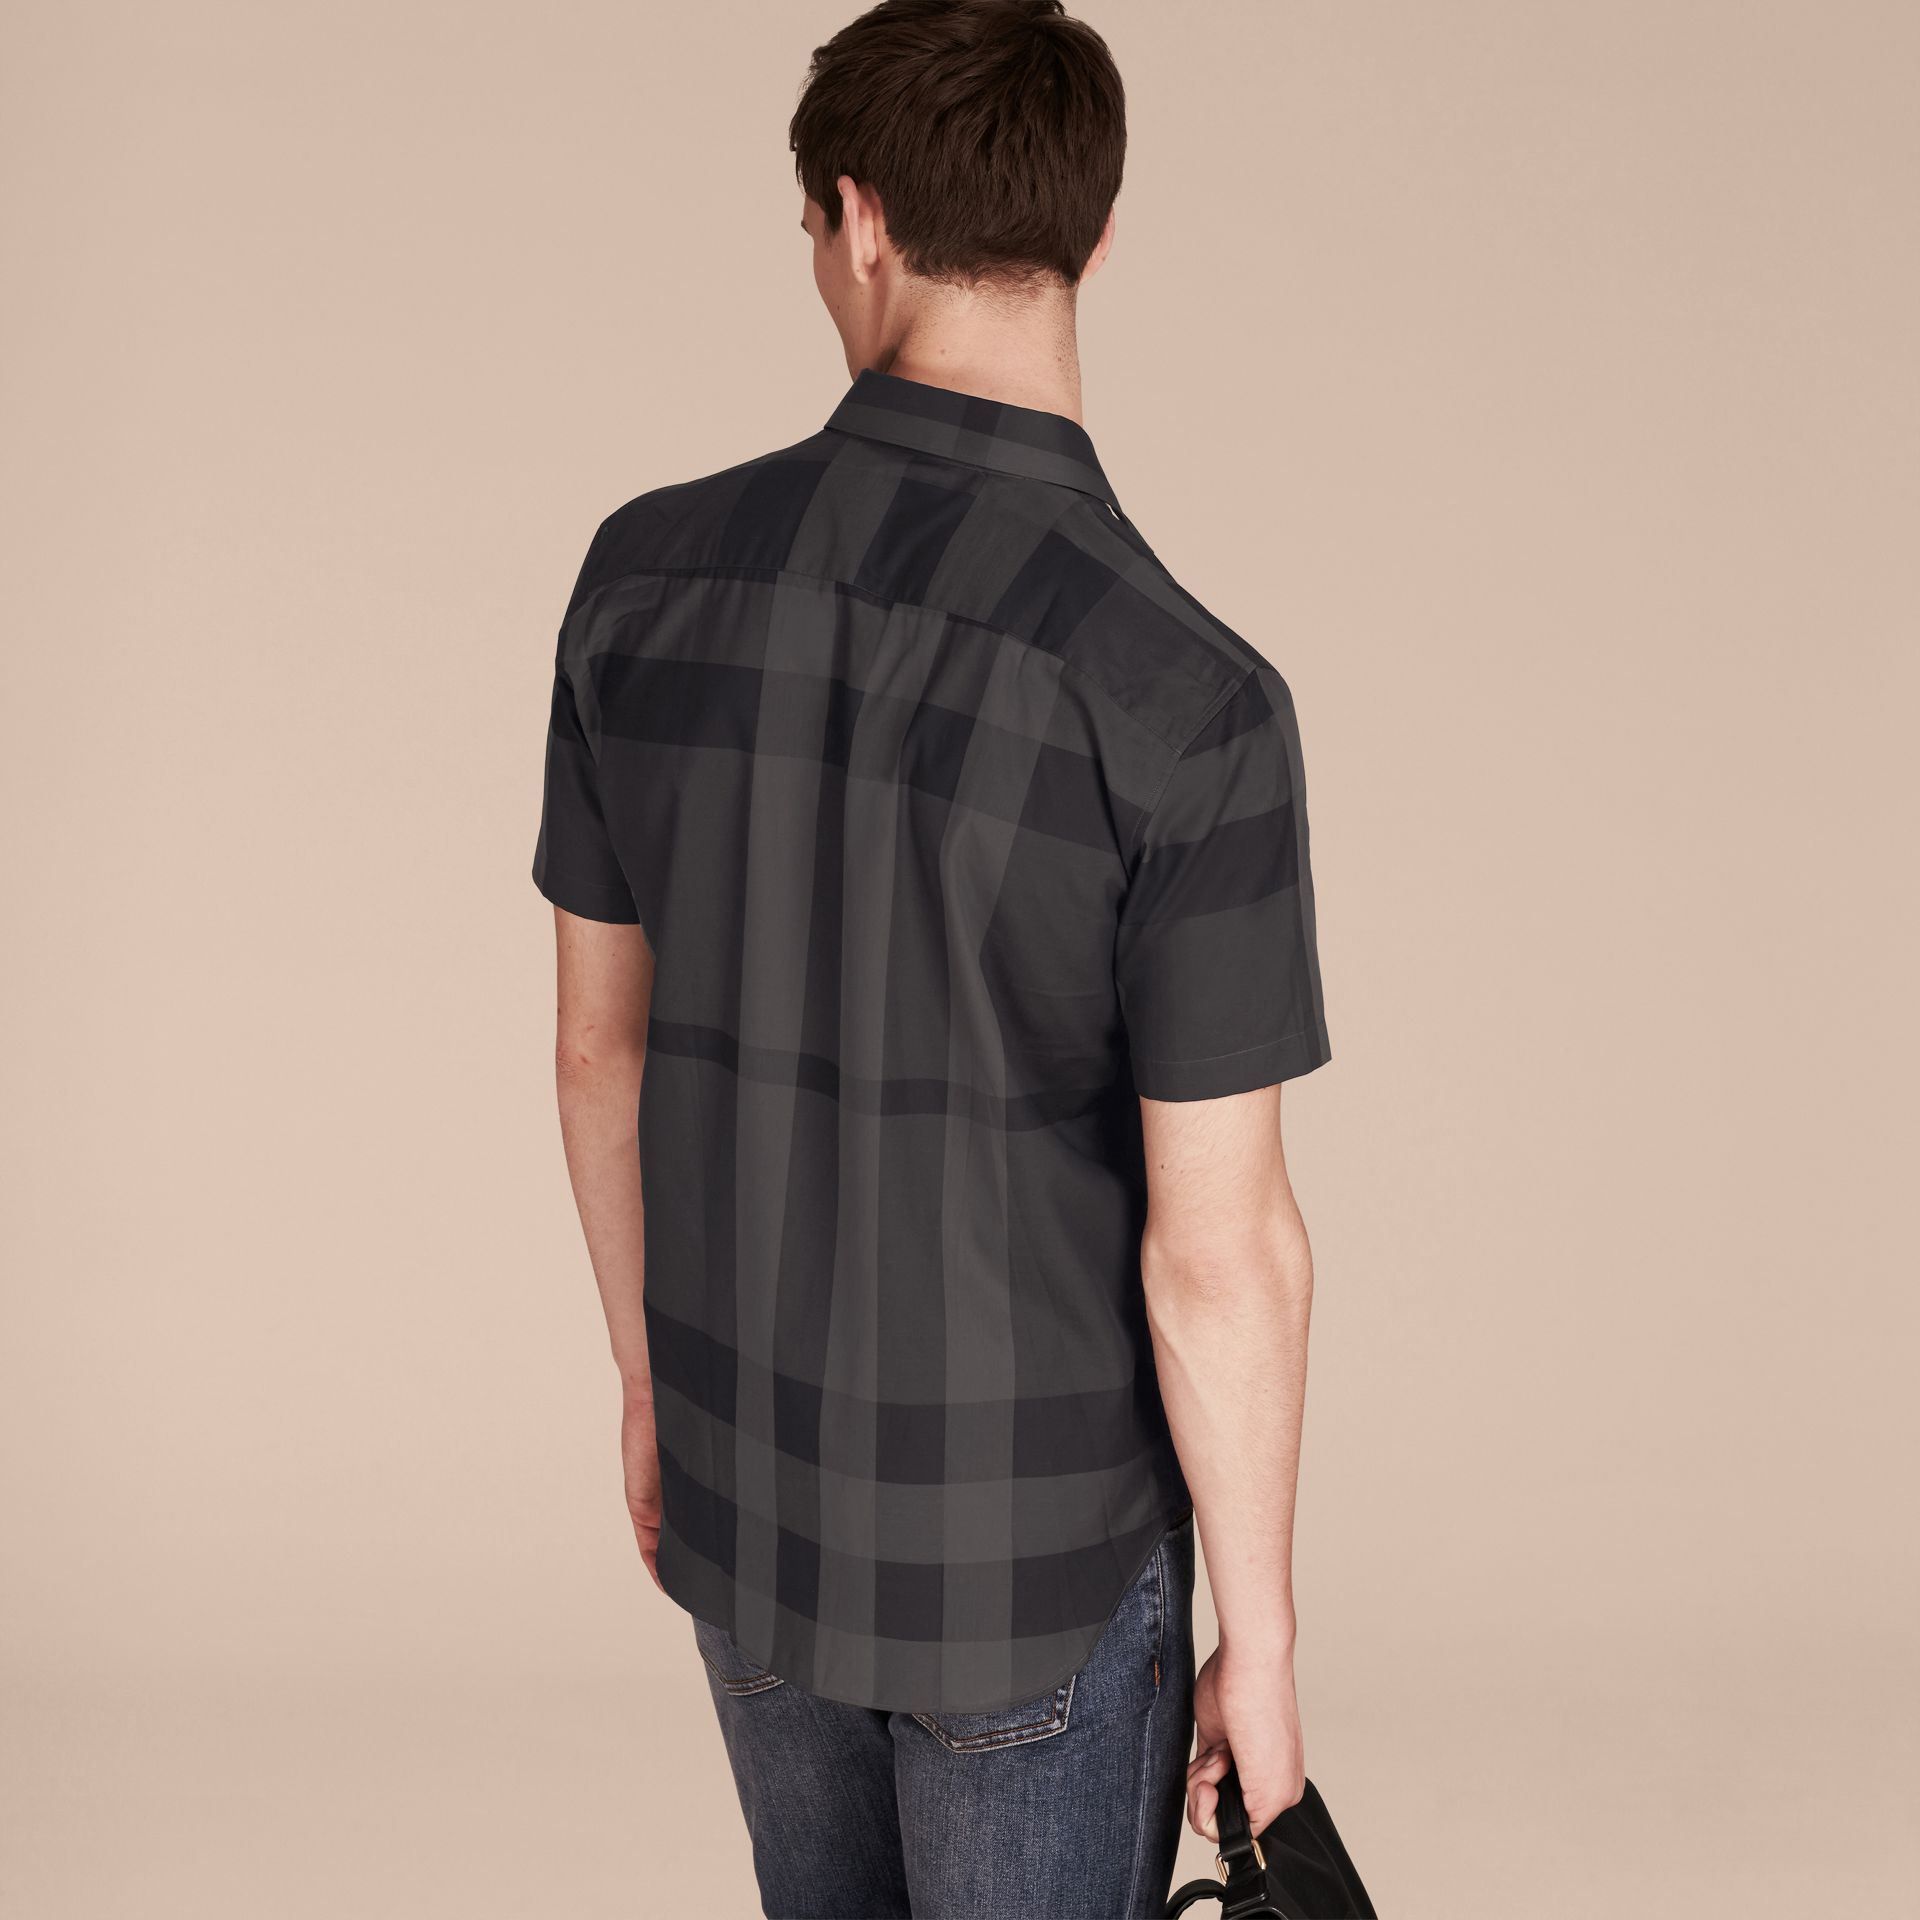 Charcoal Short-sleeved Check Cotton Shirt Charcoal - gallery image 3